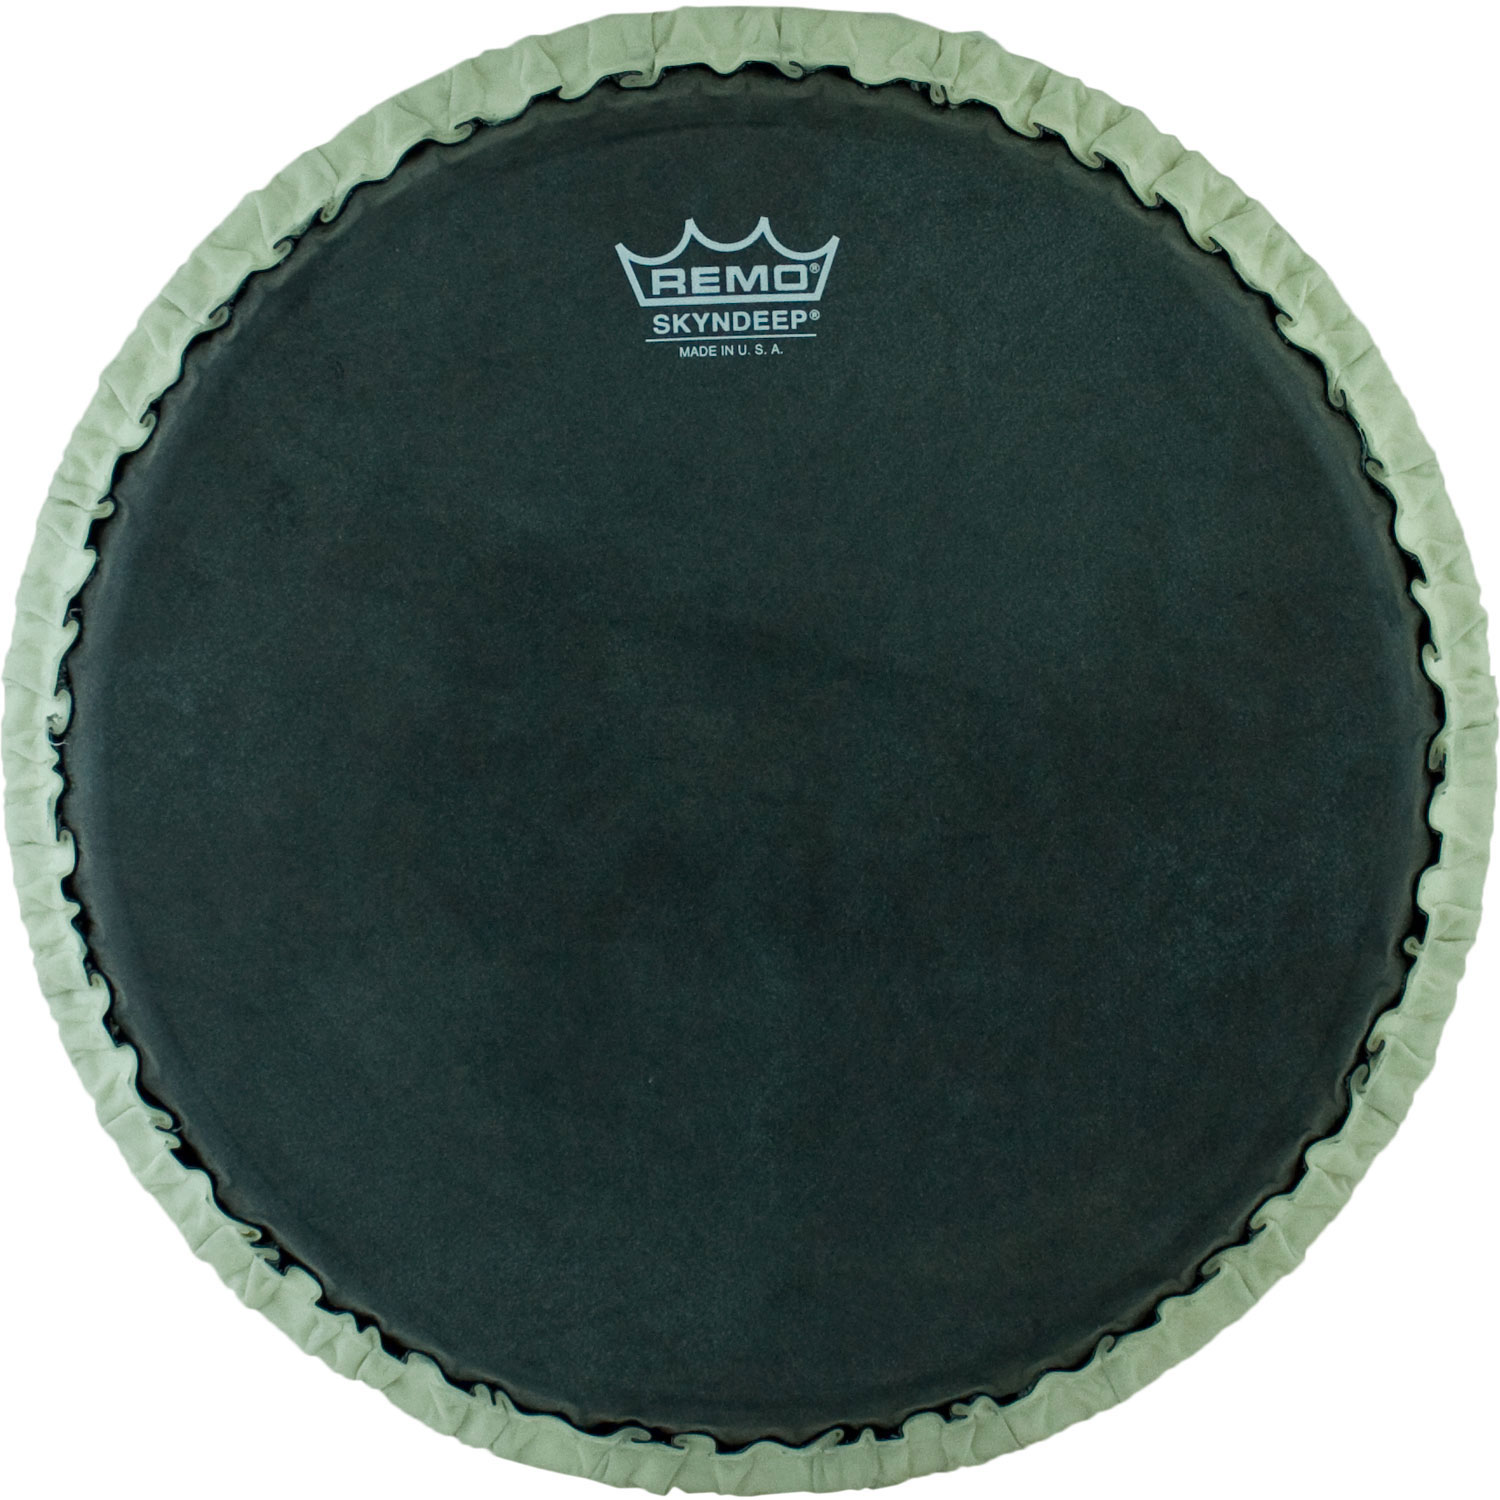 """Remo 12.5"""" Tucked Skyndeep Conga Drum Head with Black Calfskin Graphic"""